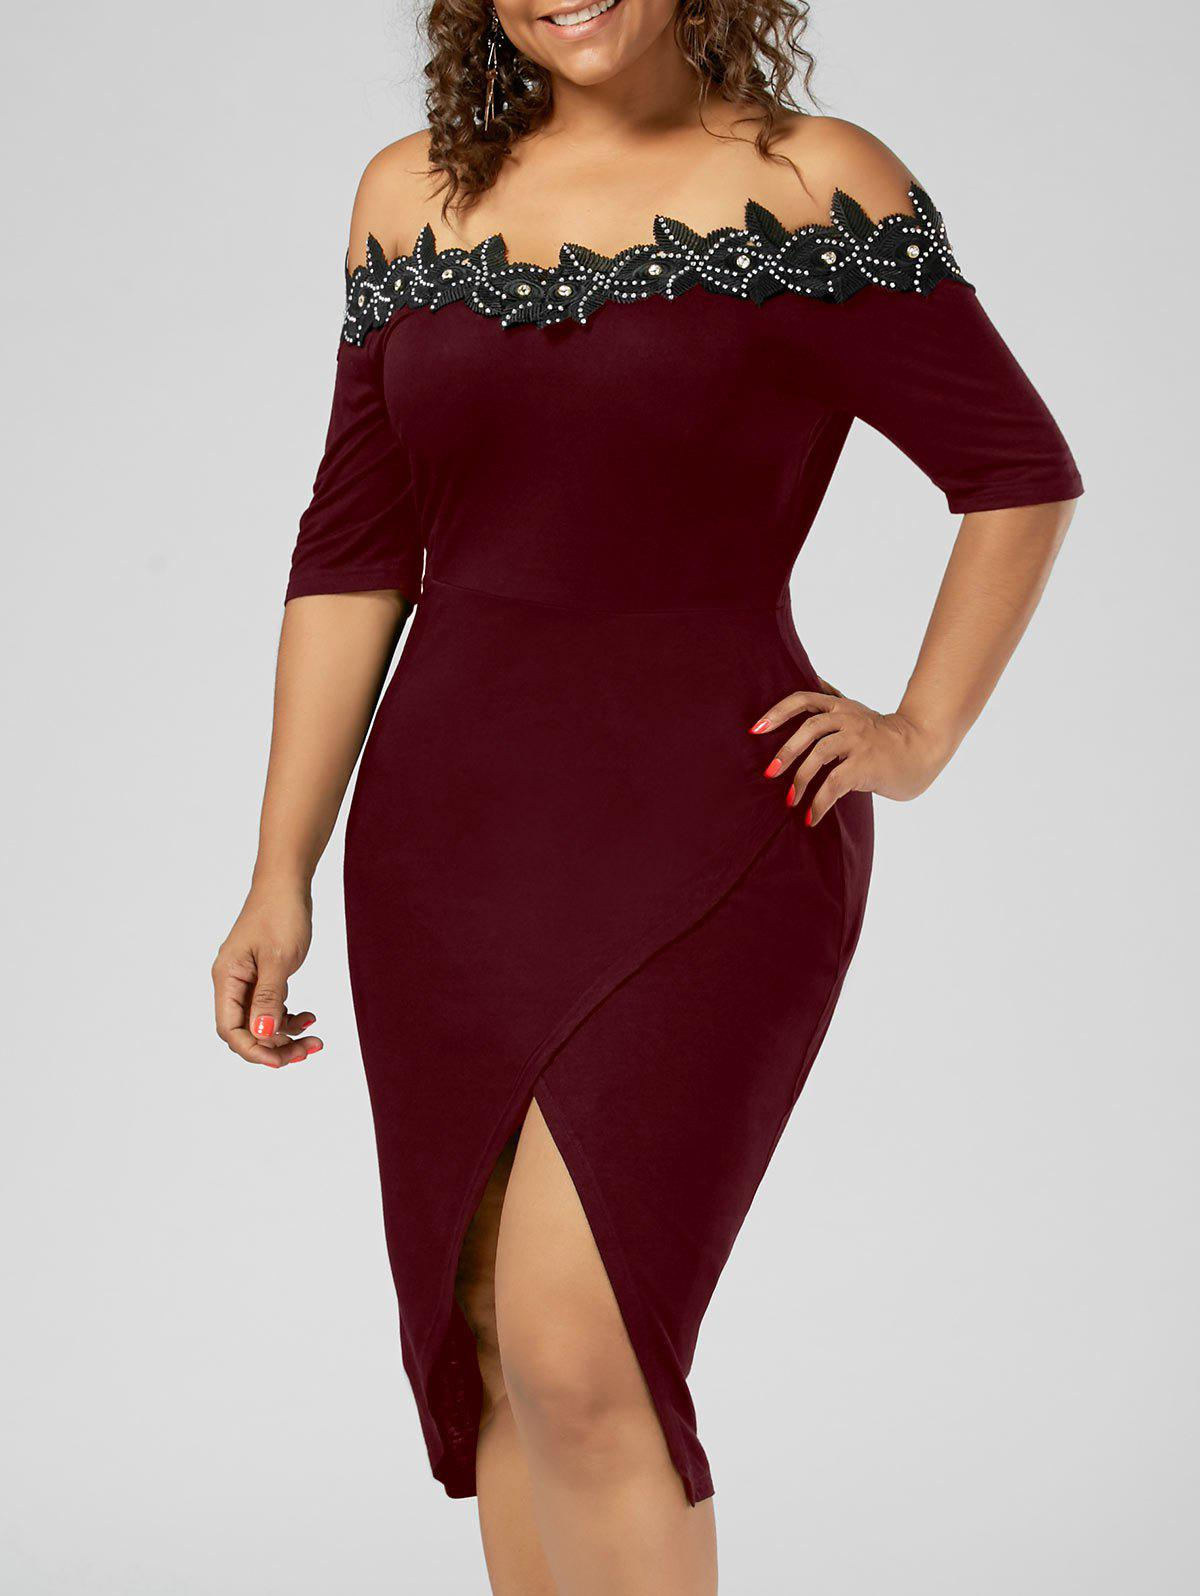 Plus Size Applique Trim Pencil Dress - WINE RED 5XL